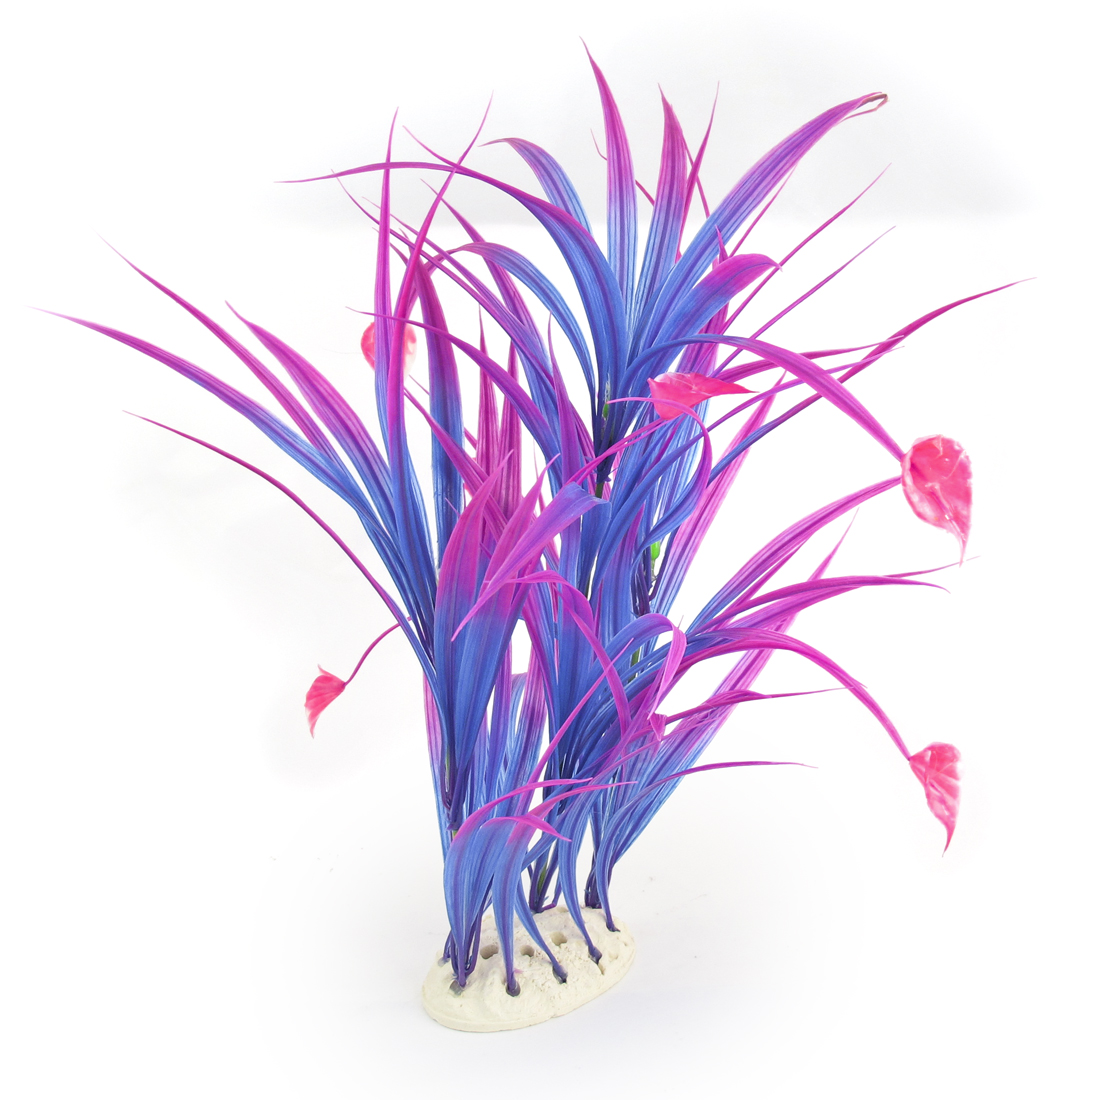 "16.9"" Height Ceramic Base Blue Fuchsia Emulational Plant Decor for Aquarium"